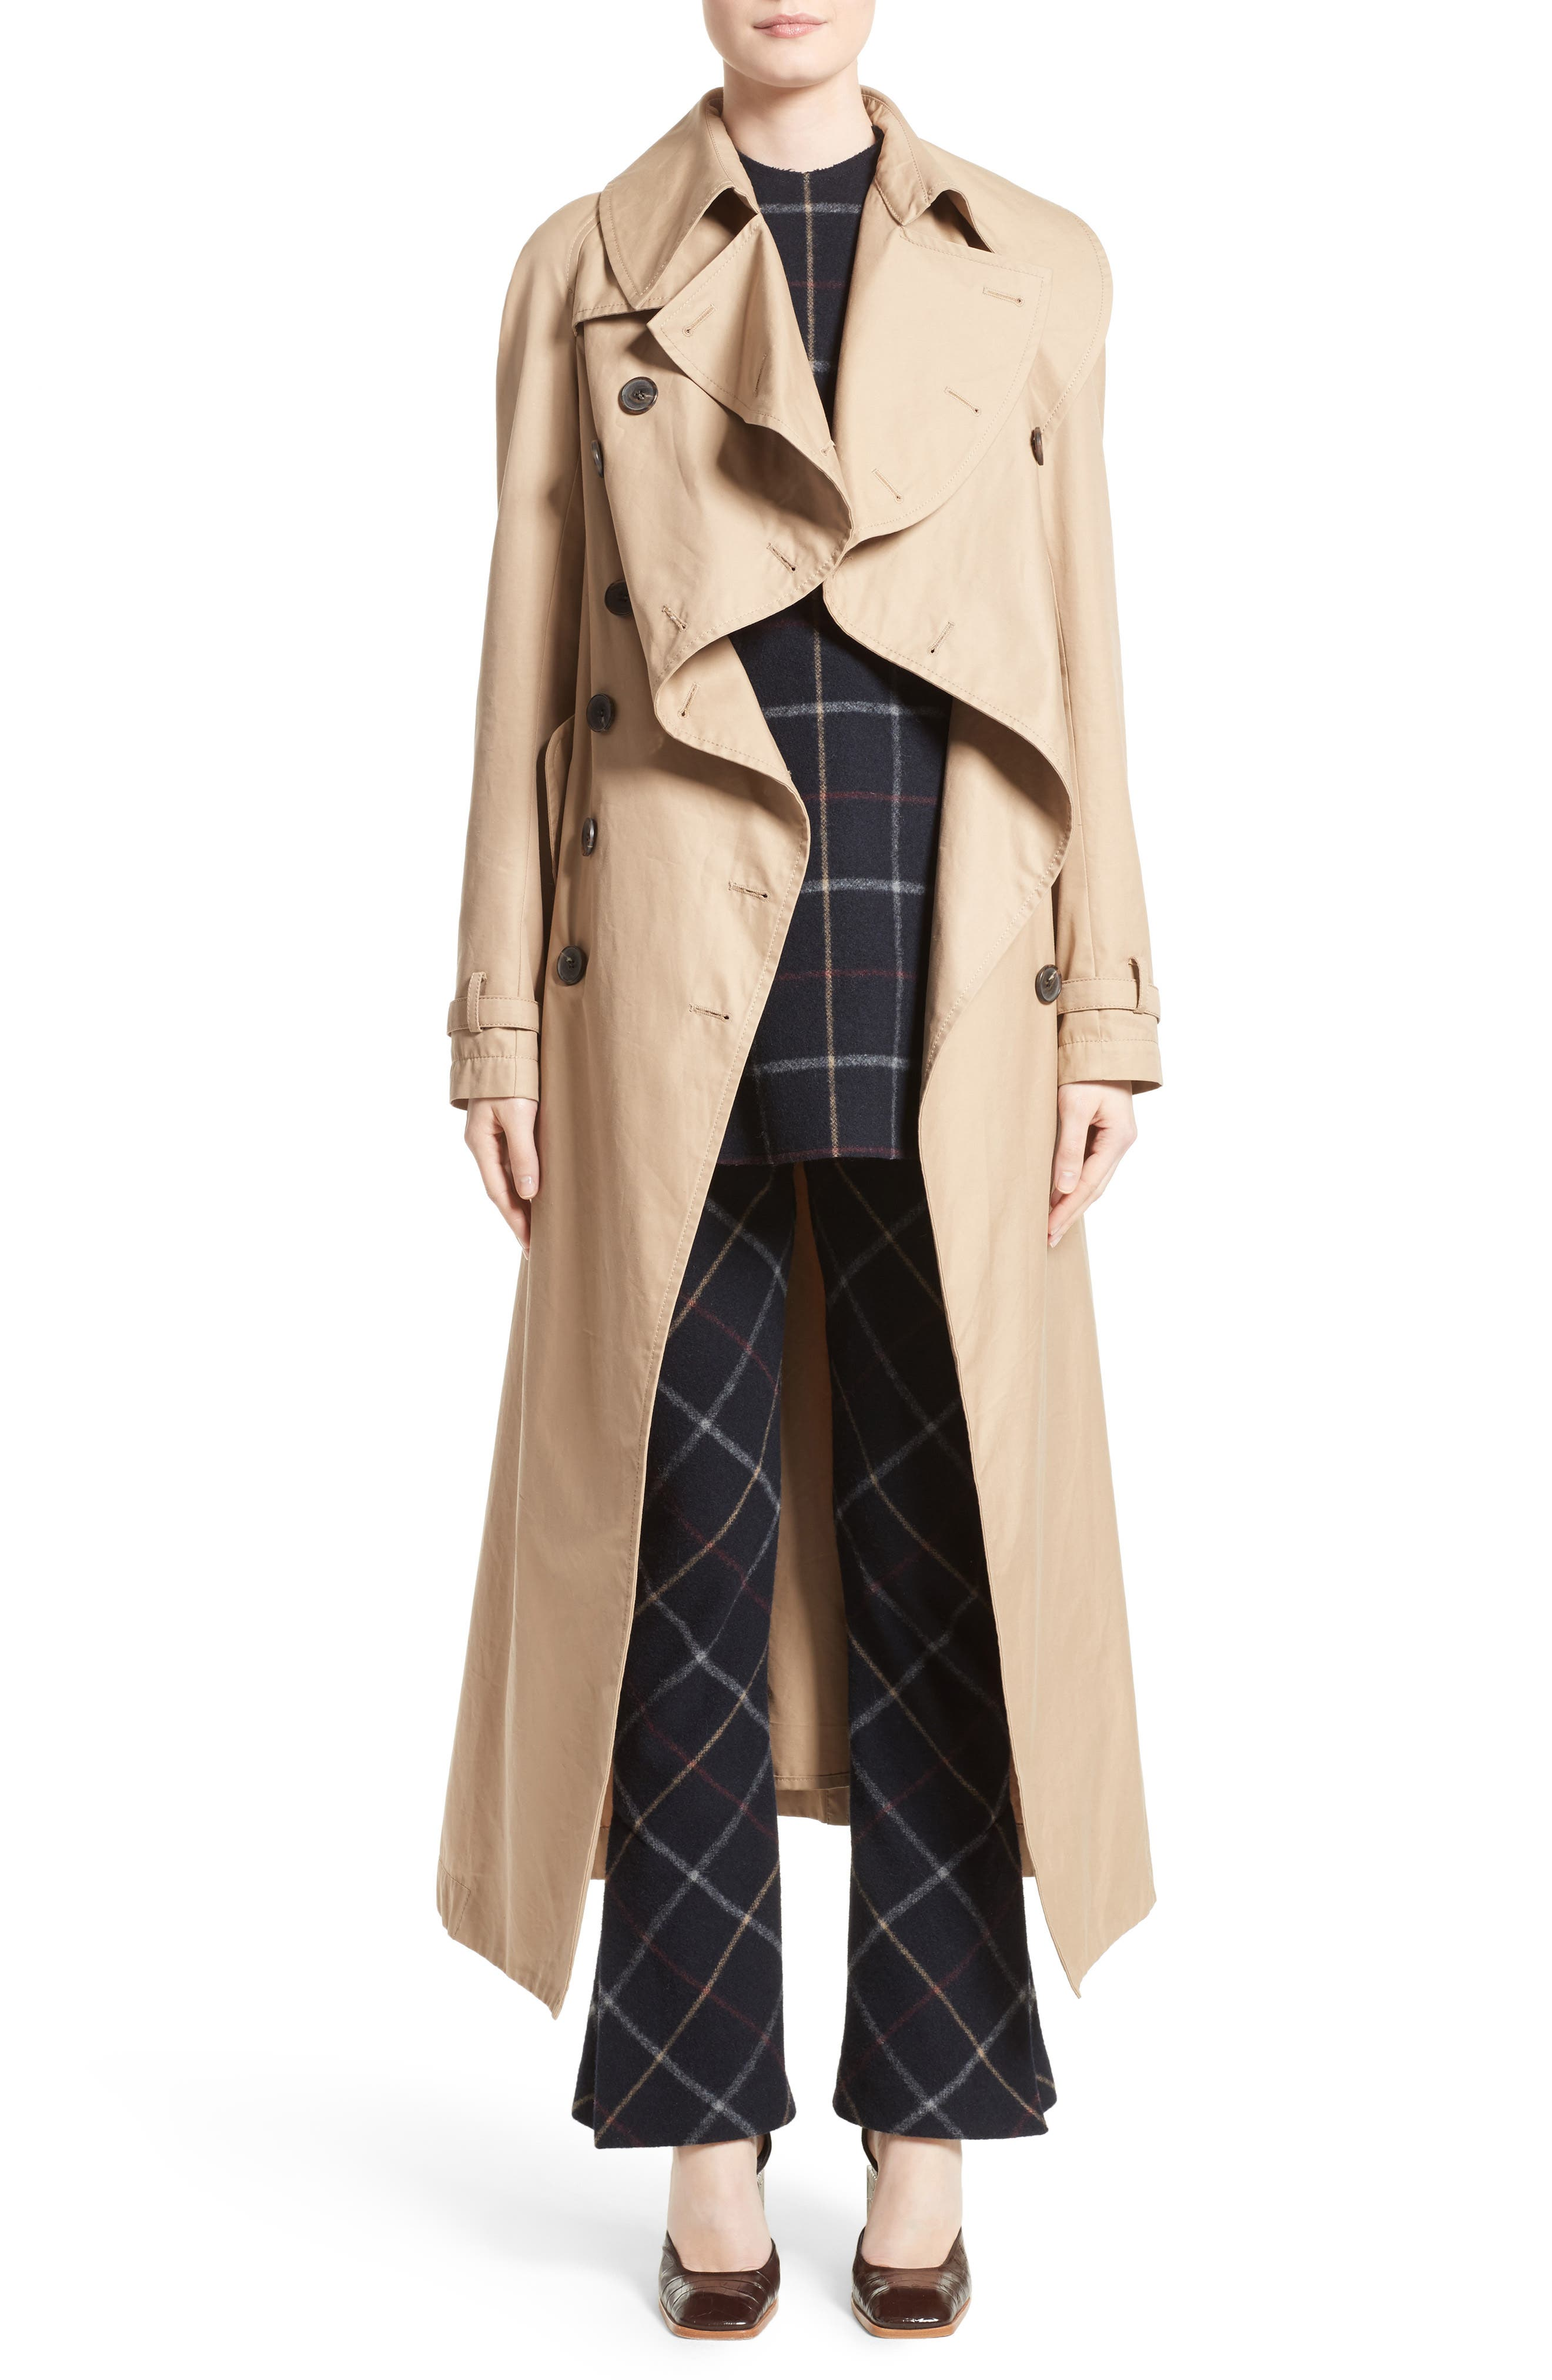 A.W.A.K.E. Oversized Cotton Trench Coat